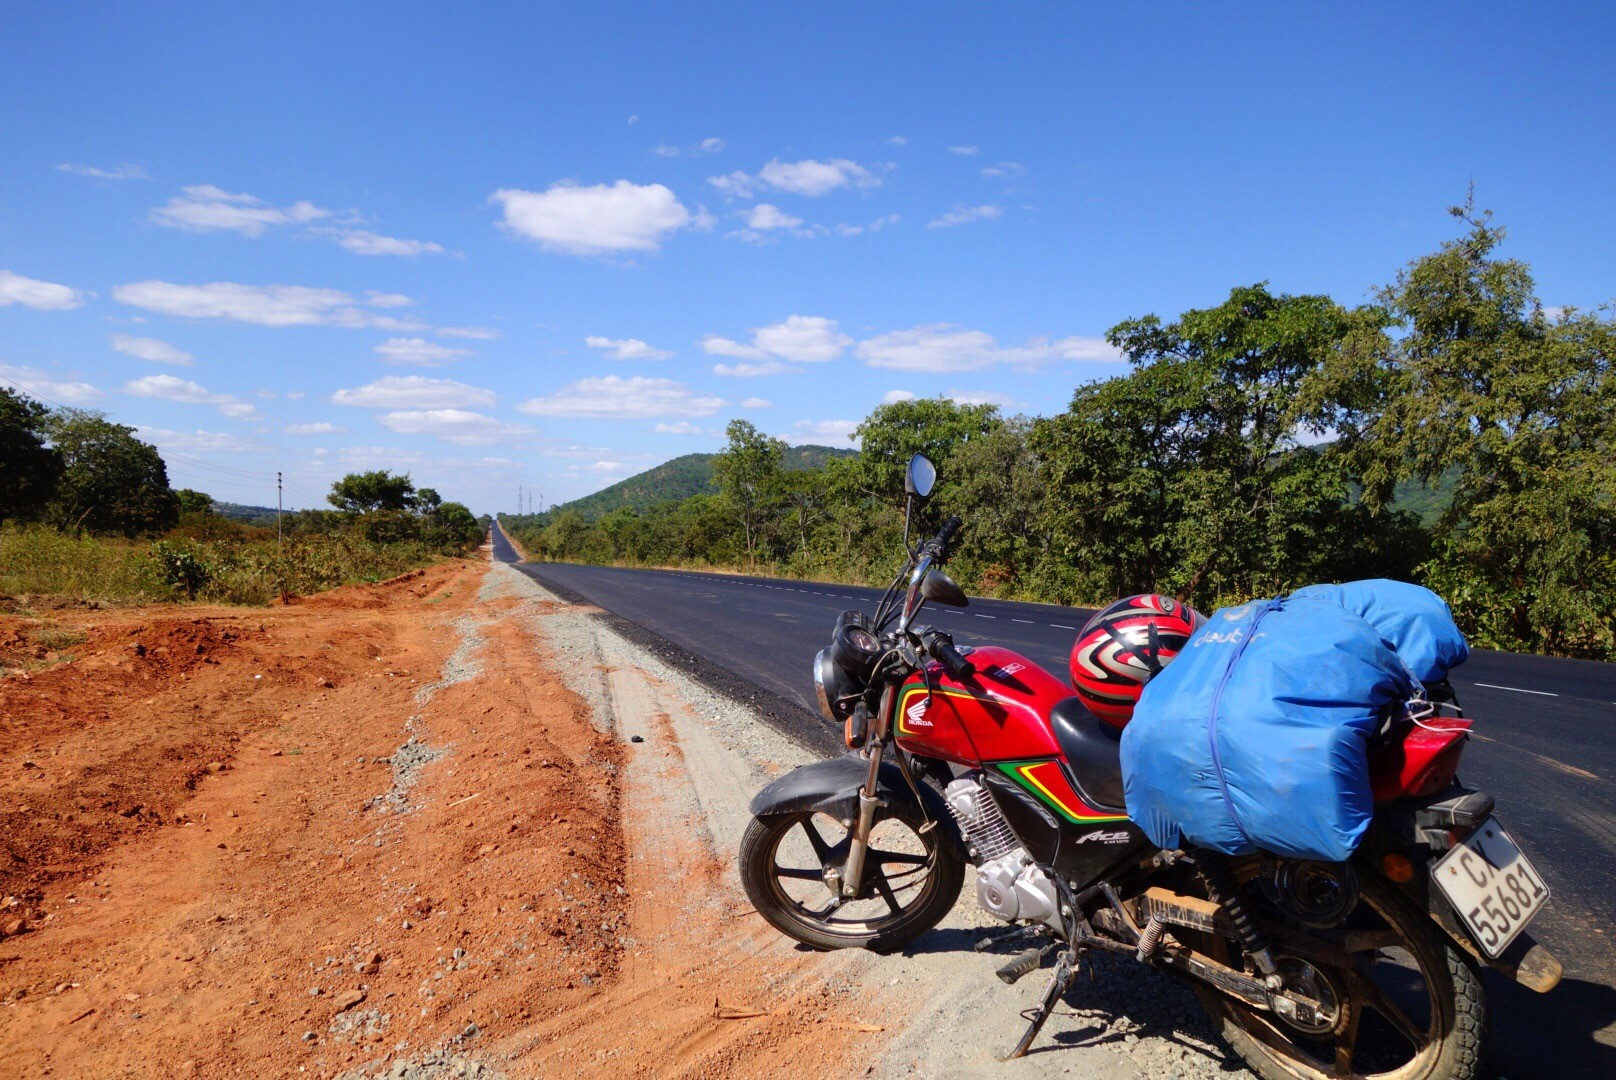 Thumbnail for the post titled: Malawi Motorcycle Project